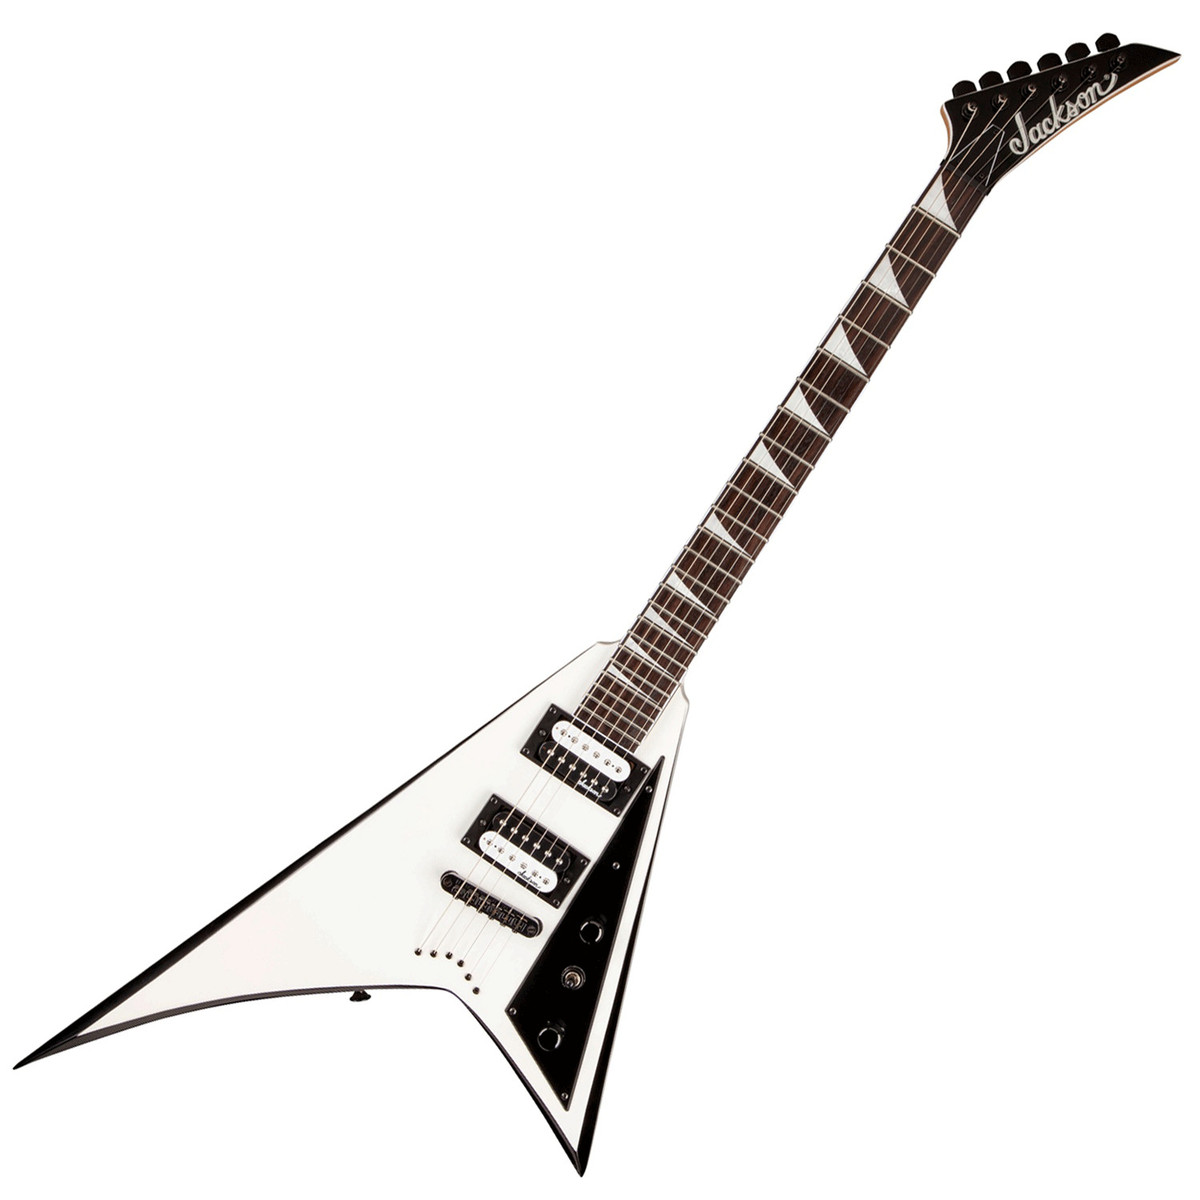 Jackson Js32t Rhoads Electric Guitar White At Gear4music